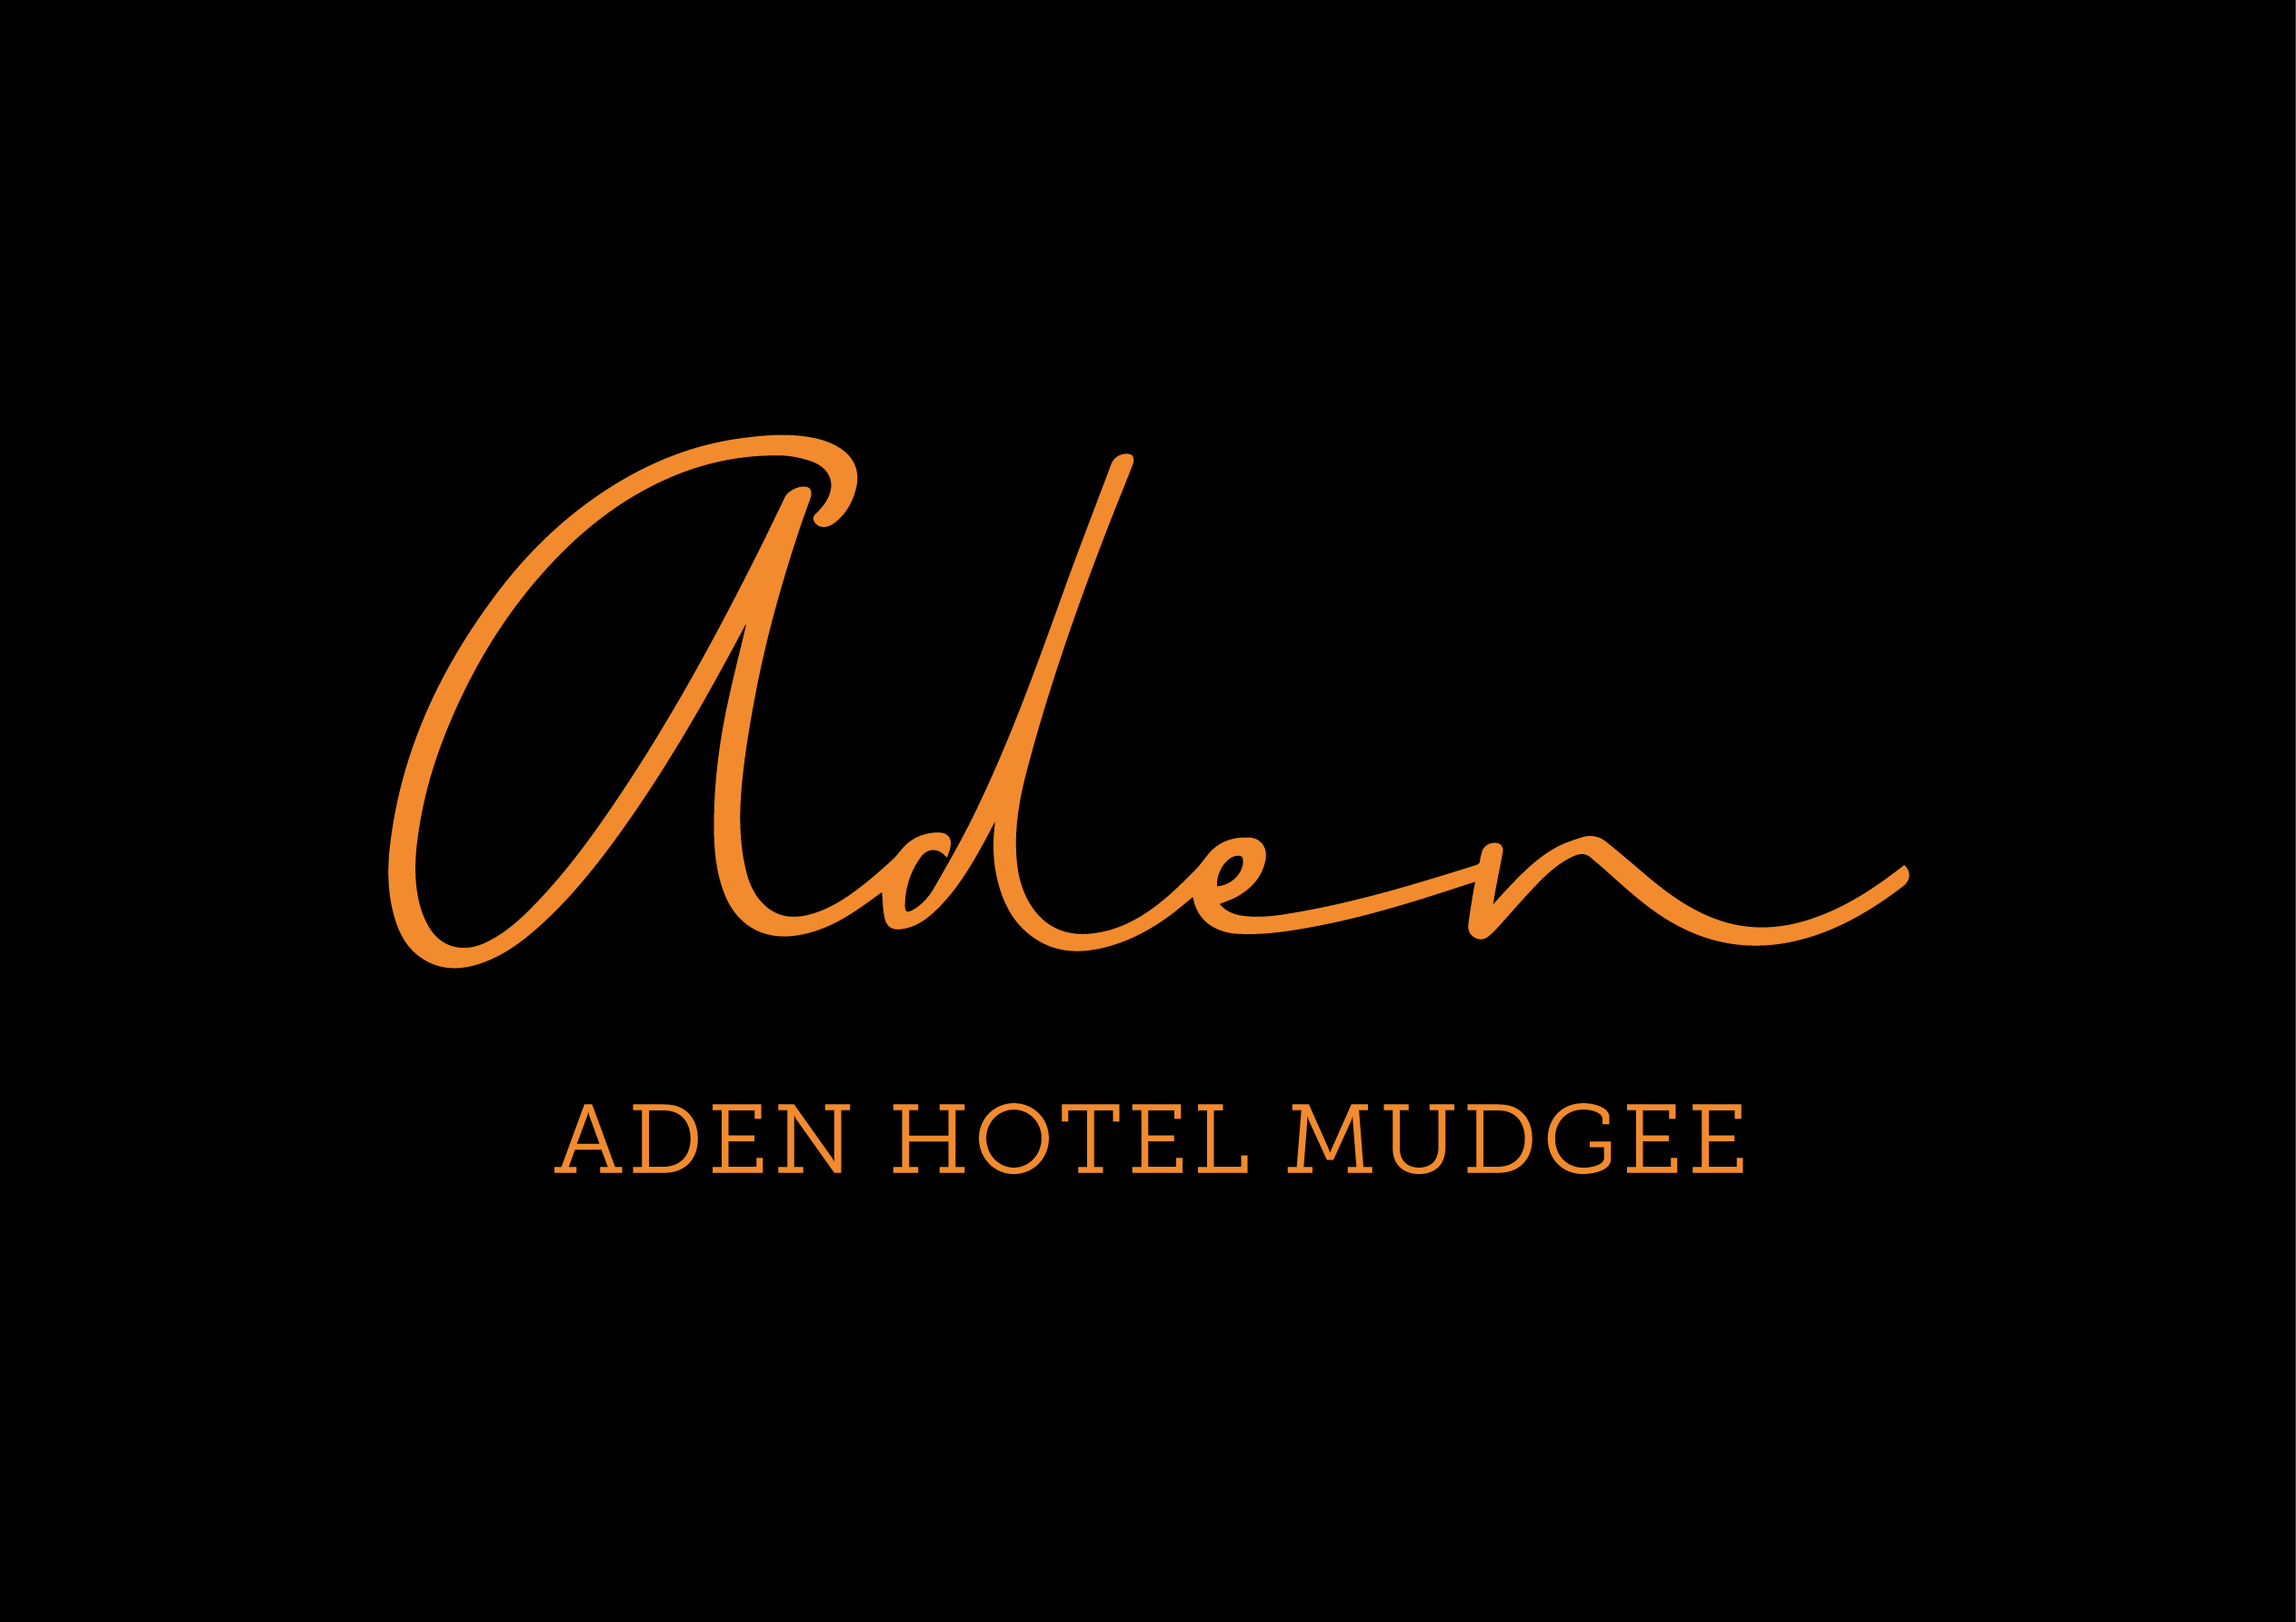 Comfort Inn Aden Hotel Mudgee - Accommodation Melbourne